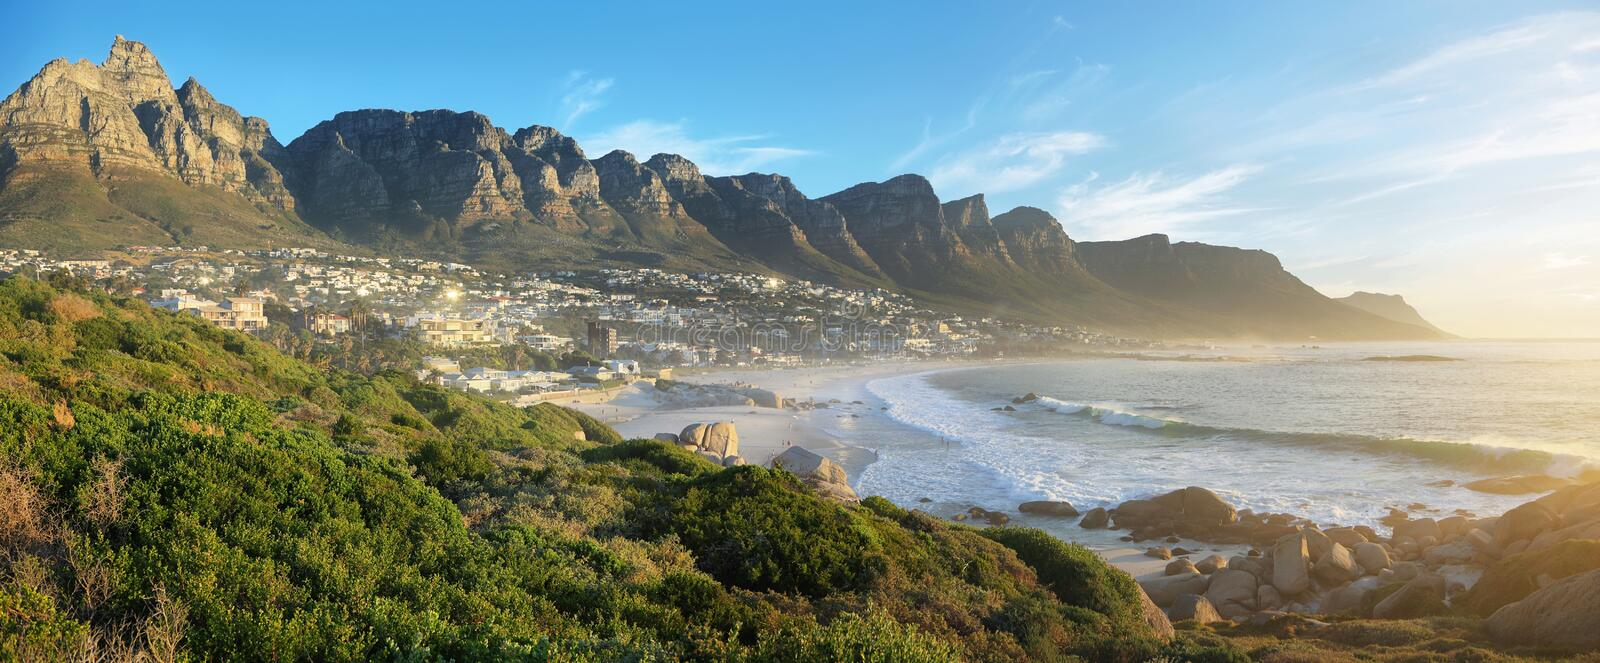 Camps Bay Beach in Cape Town, South Africa stock image